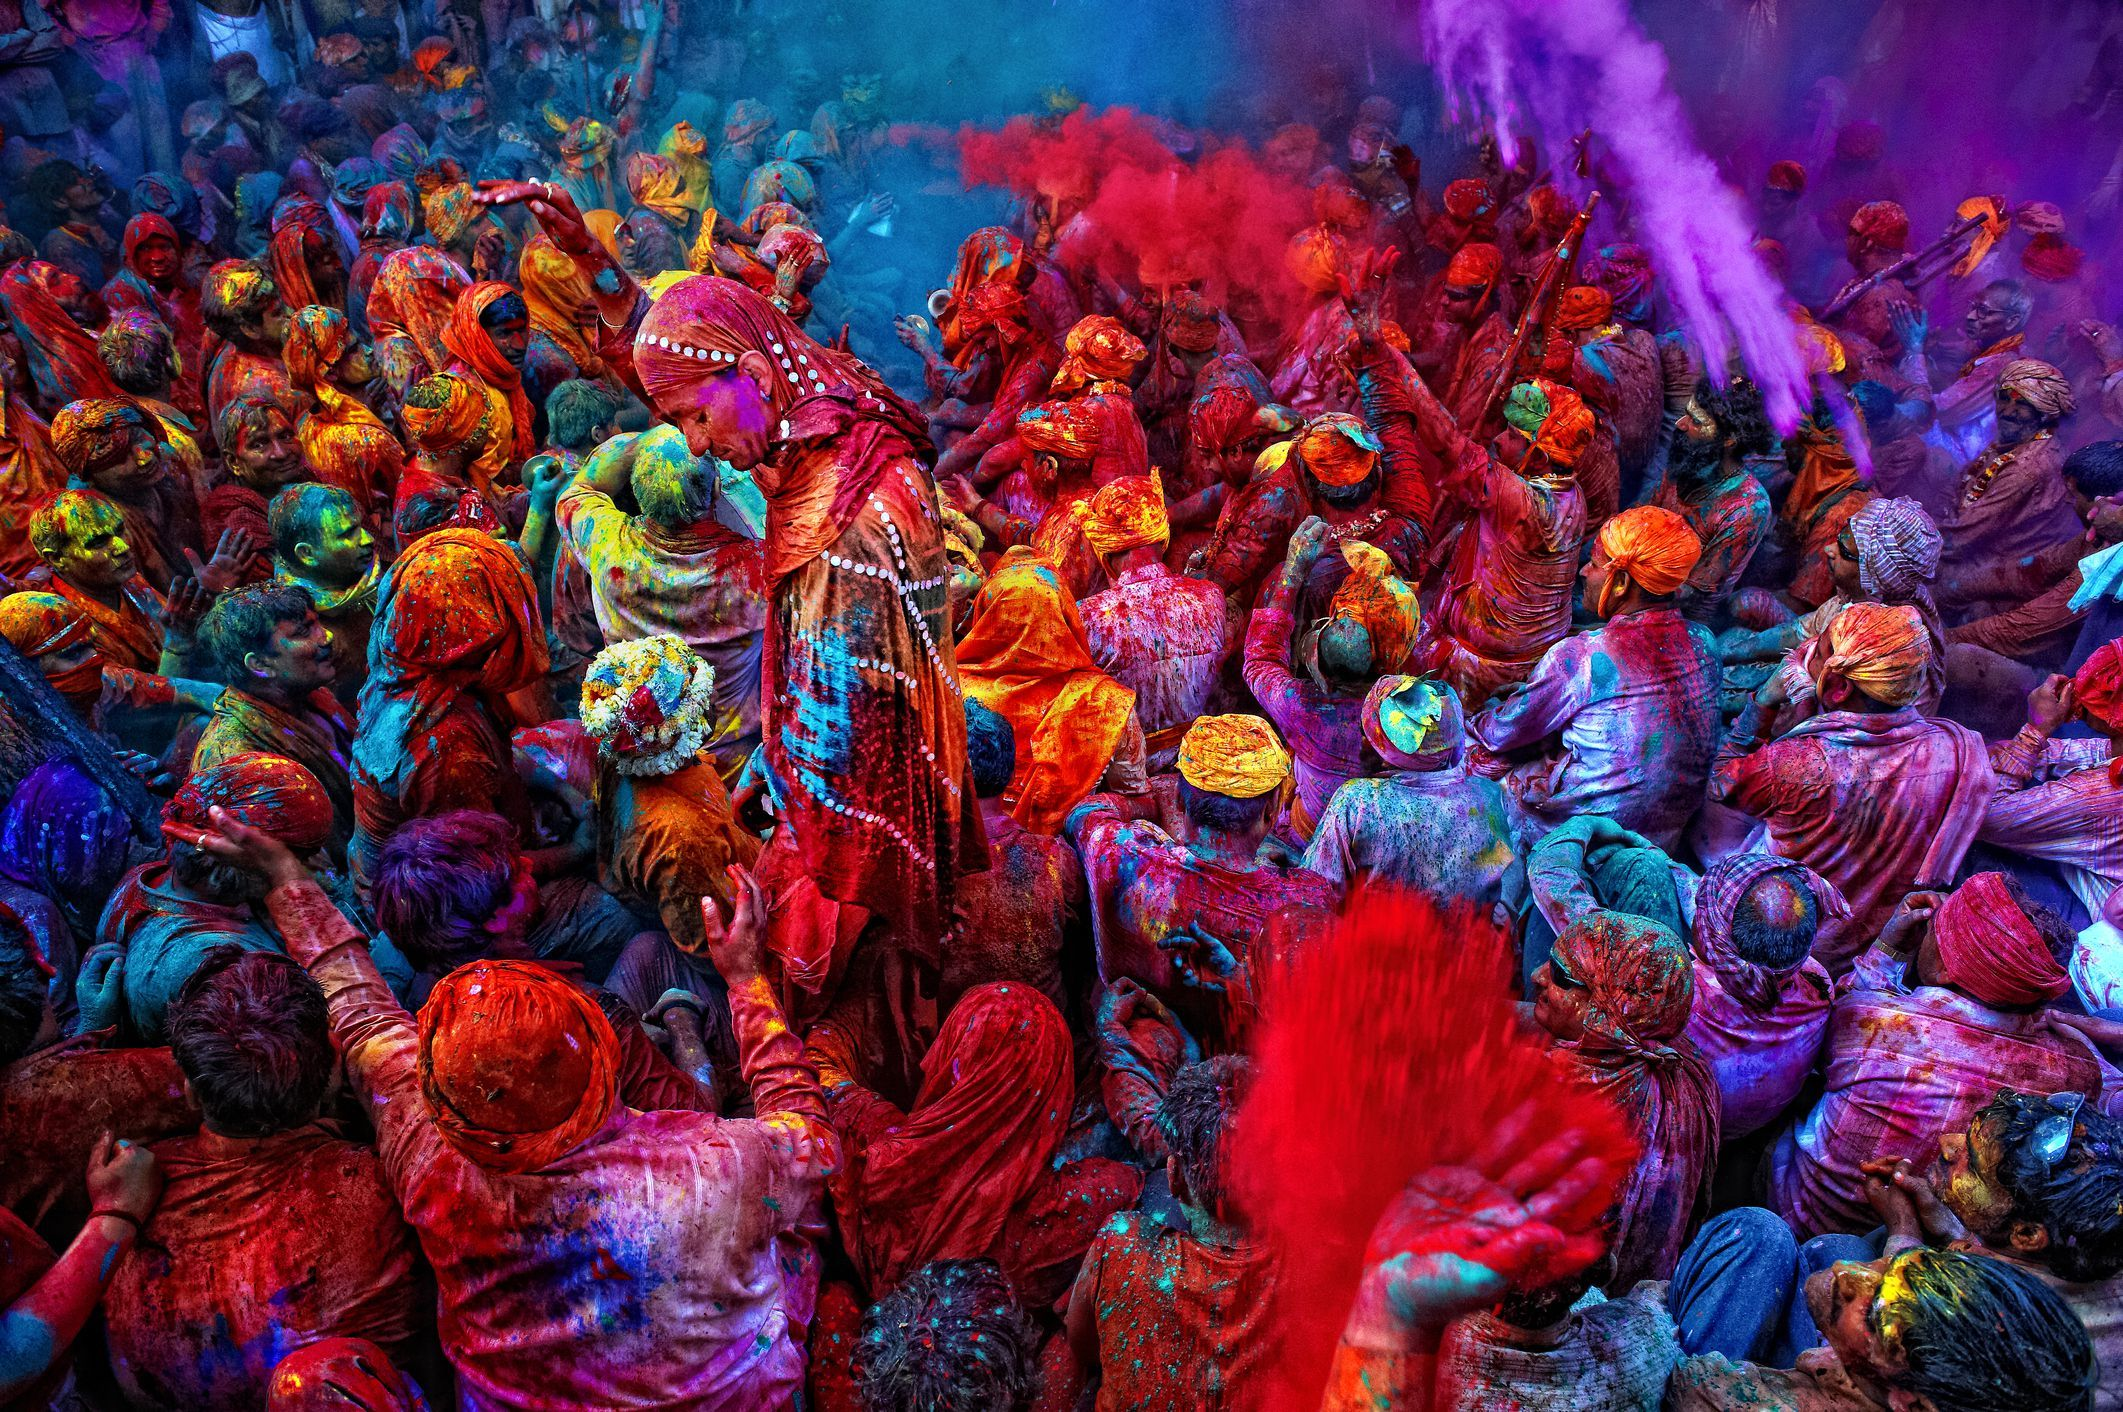 Essential Guide to the Holi Festival in India Holi